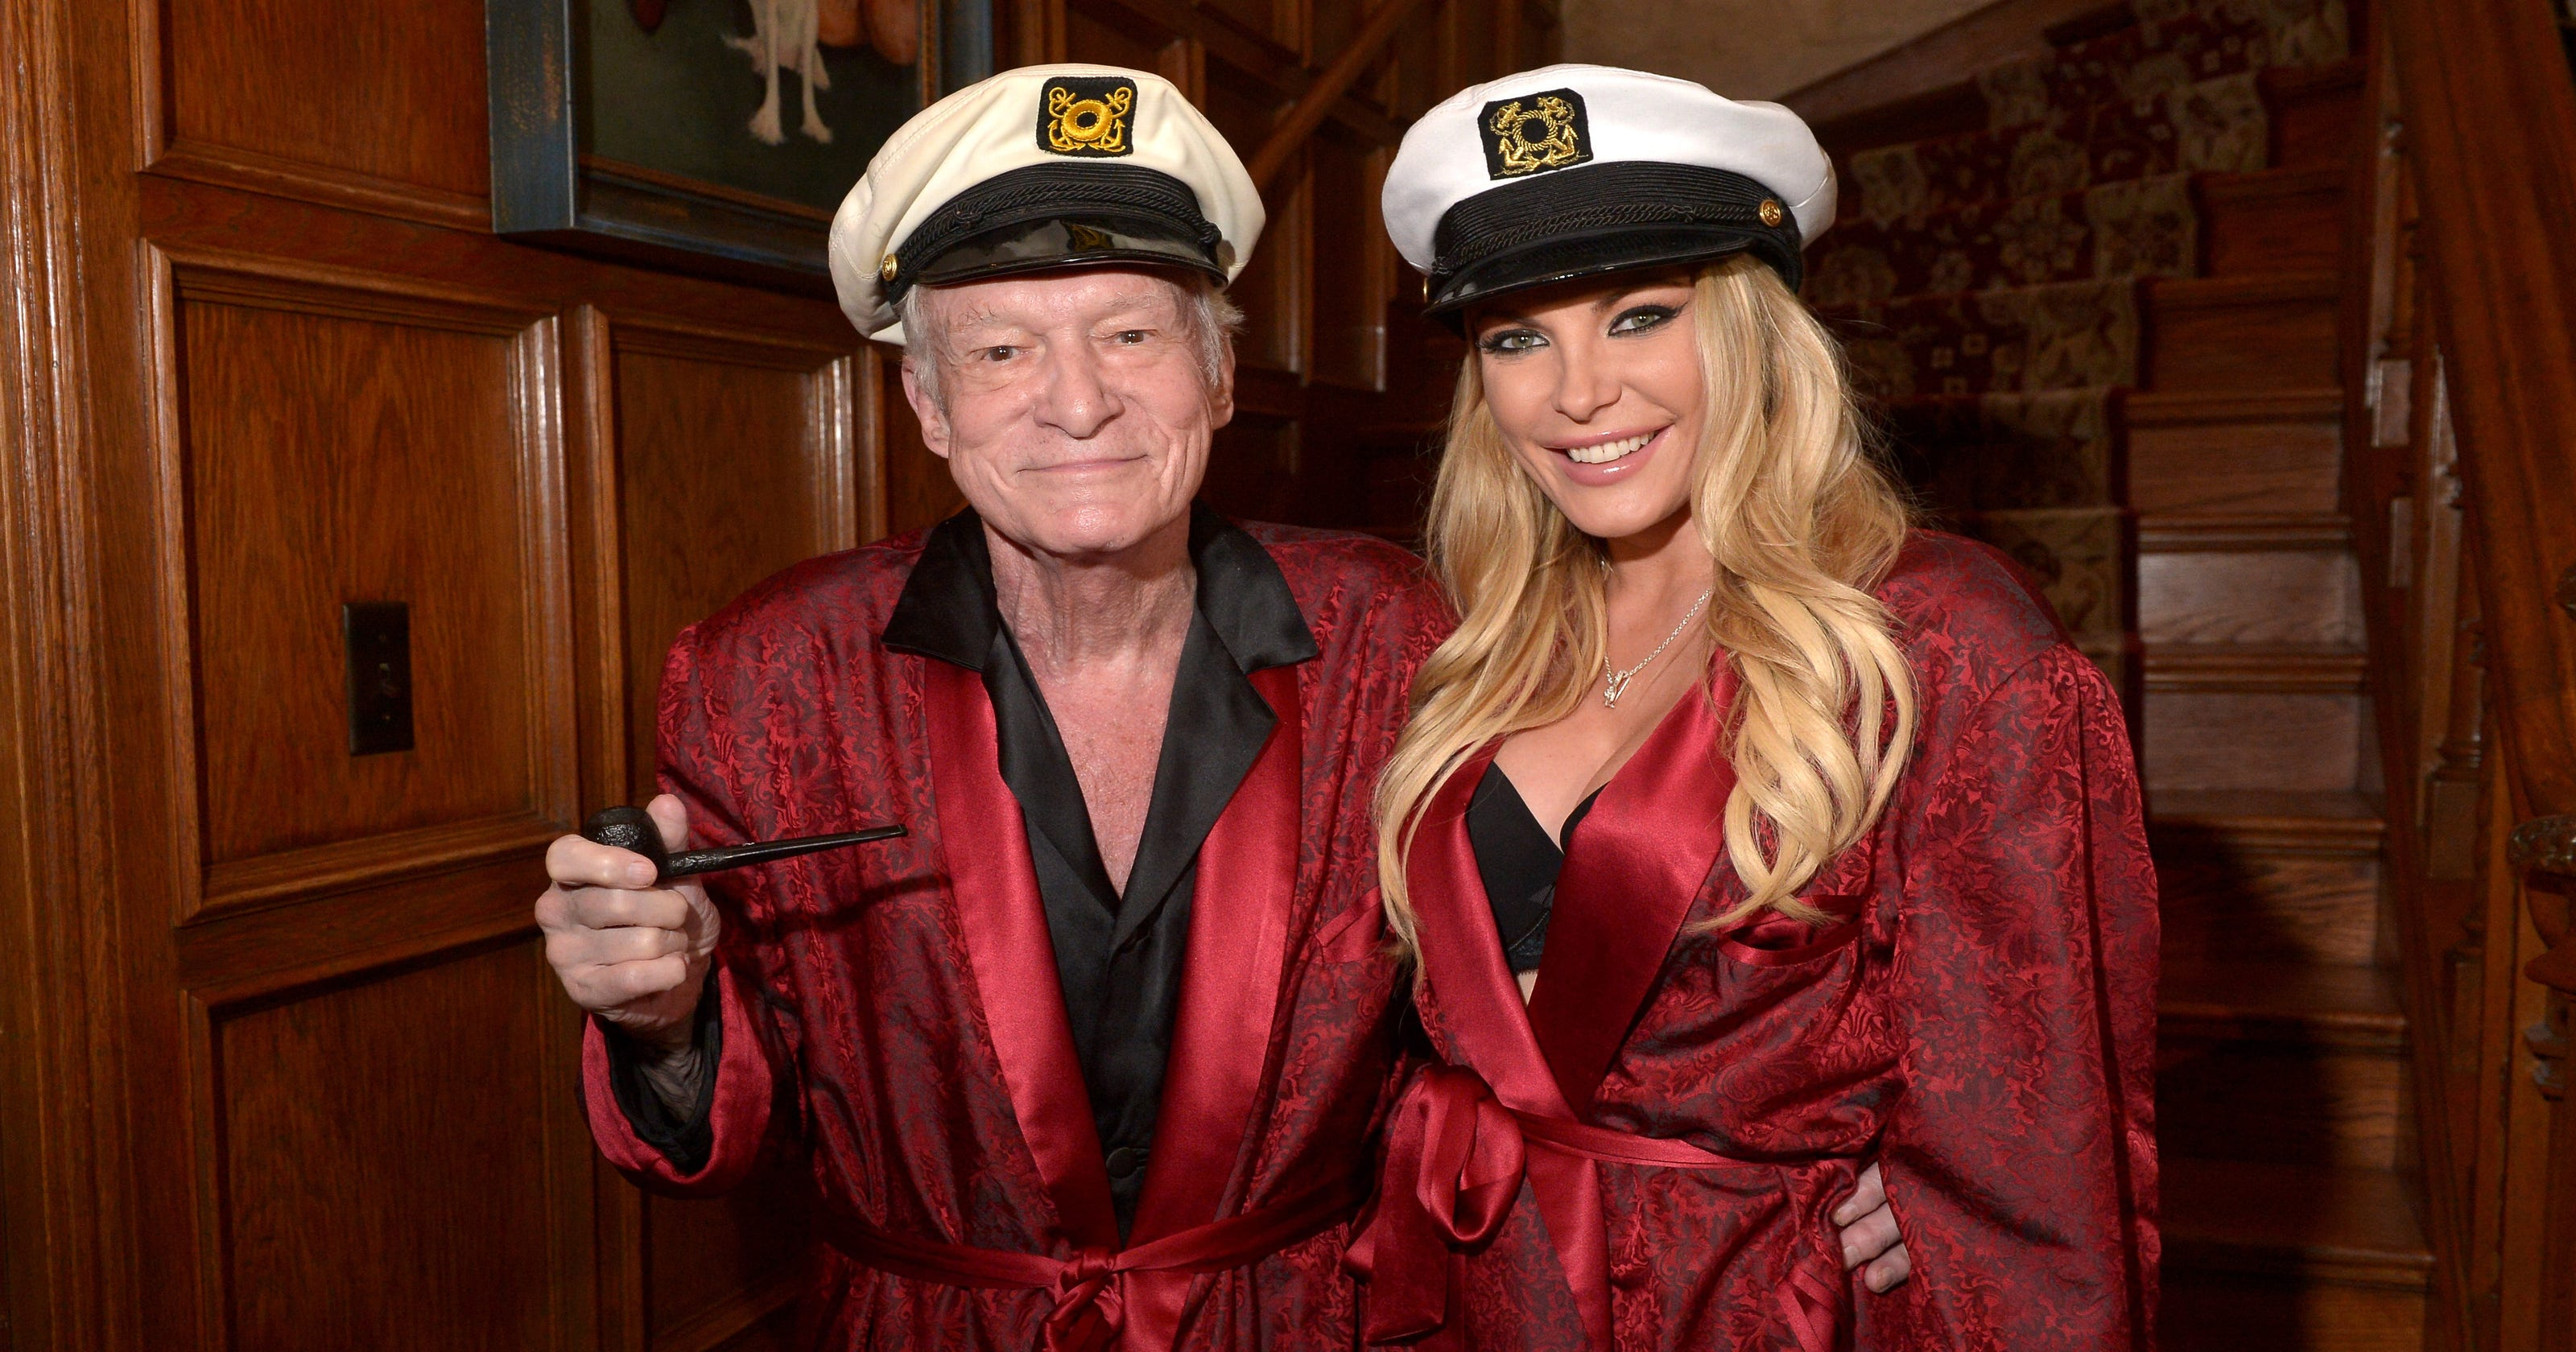 Hugh Hefner Playboy Founder Dies At 91 Gibson 335 Wiring Harness